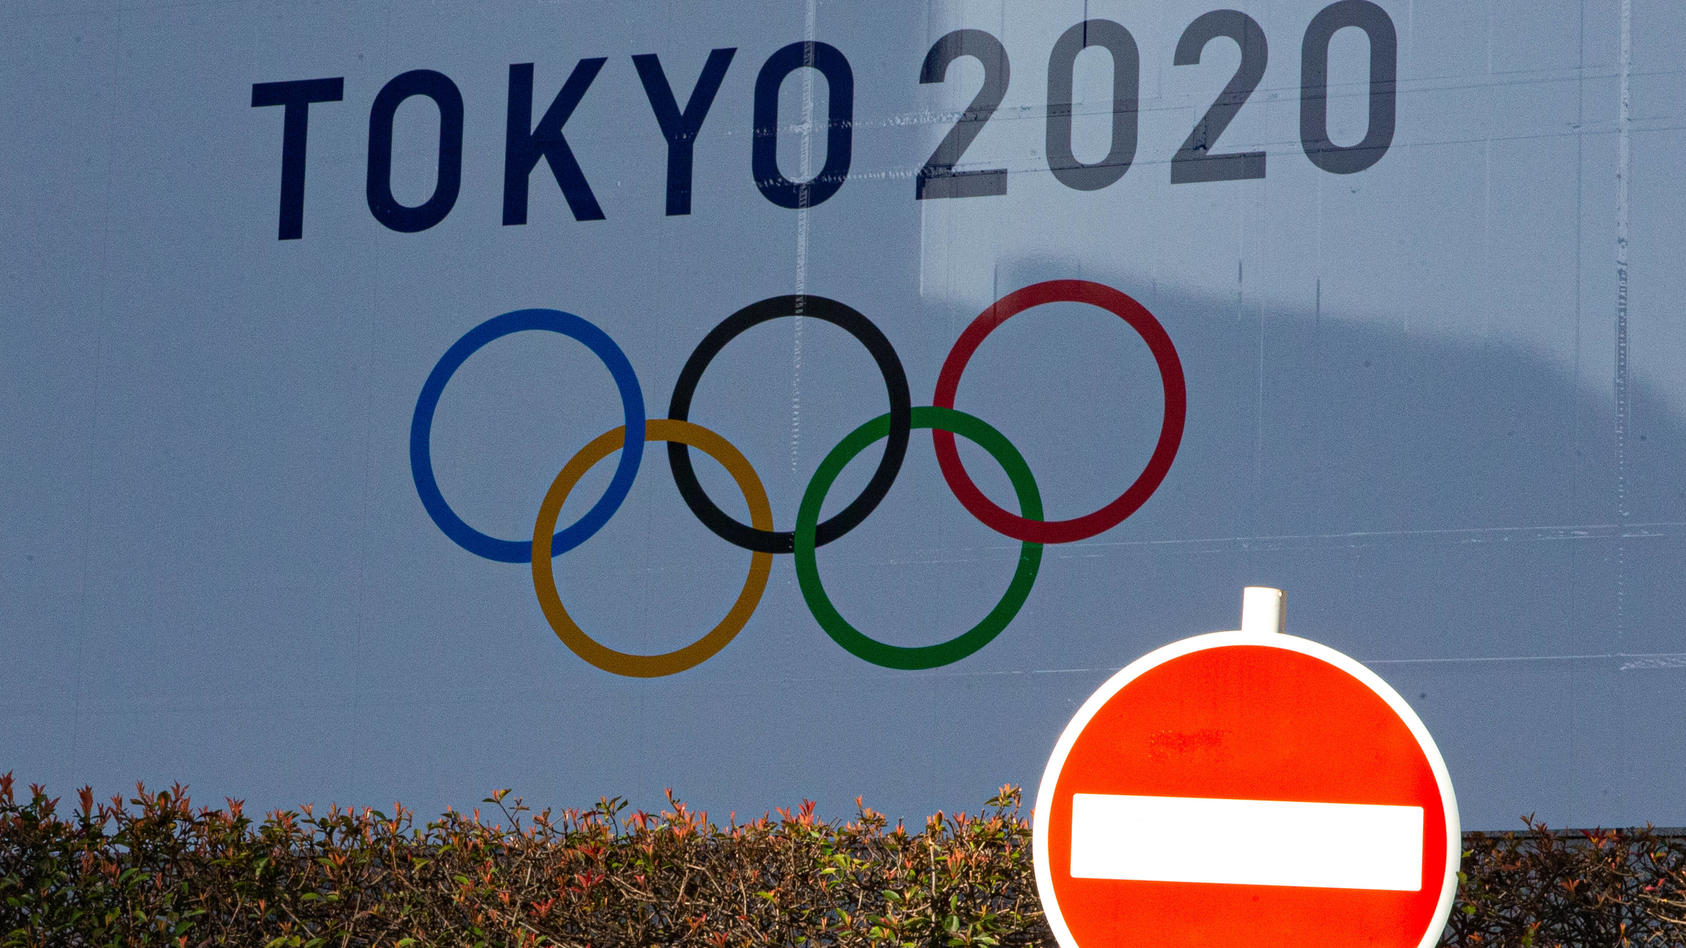 A large display promoting the Tokyo 2020 Olympics is seen in Tokyo, Japan on March 25, 2020, a day after the Tokyo 2020